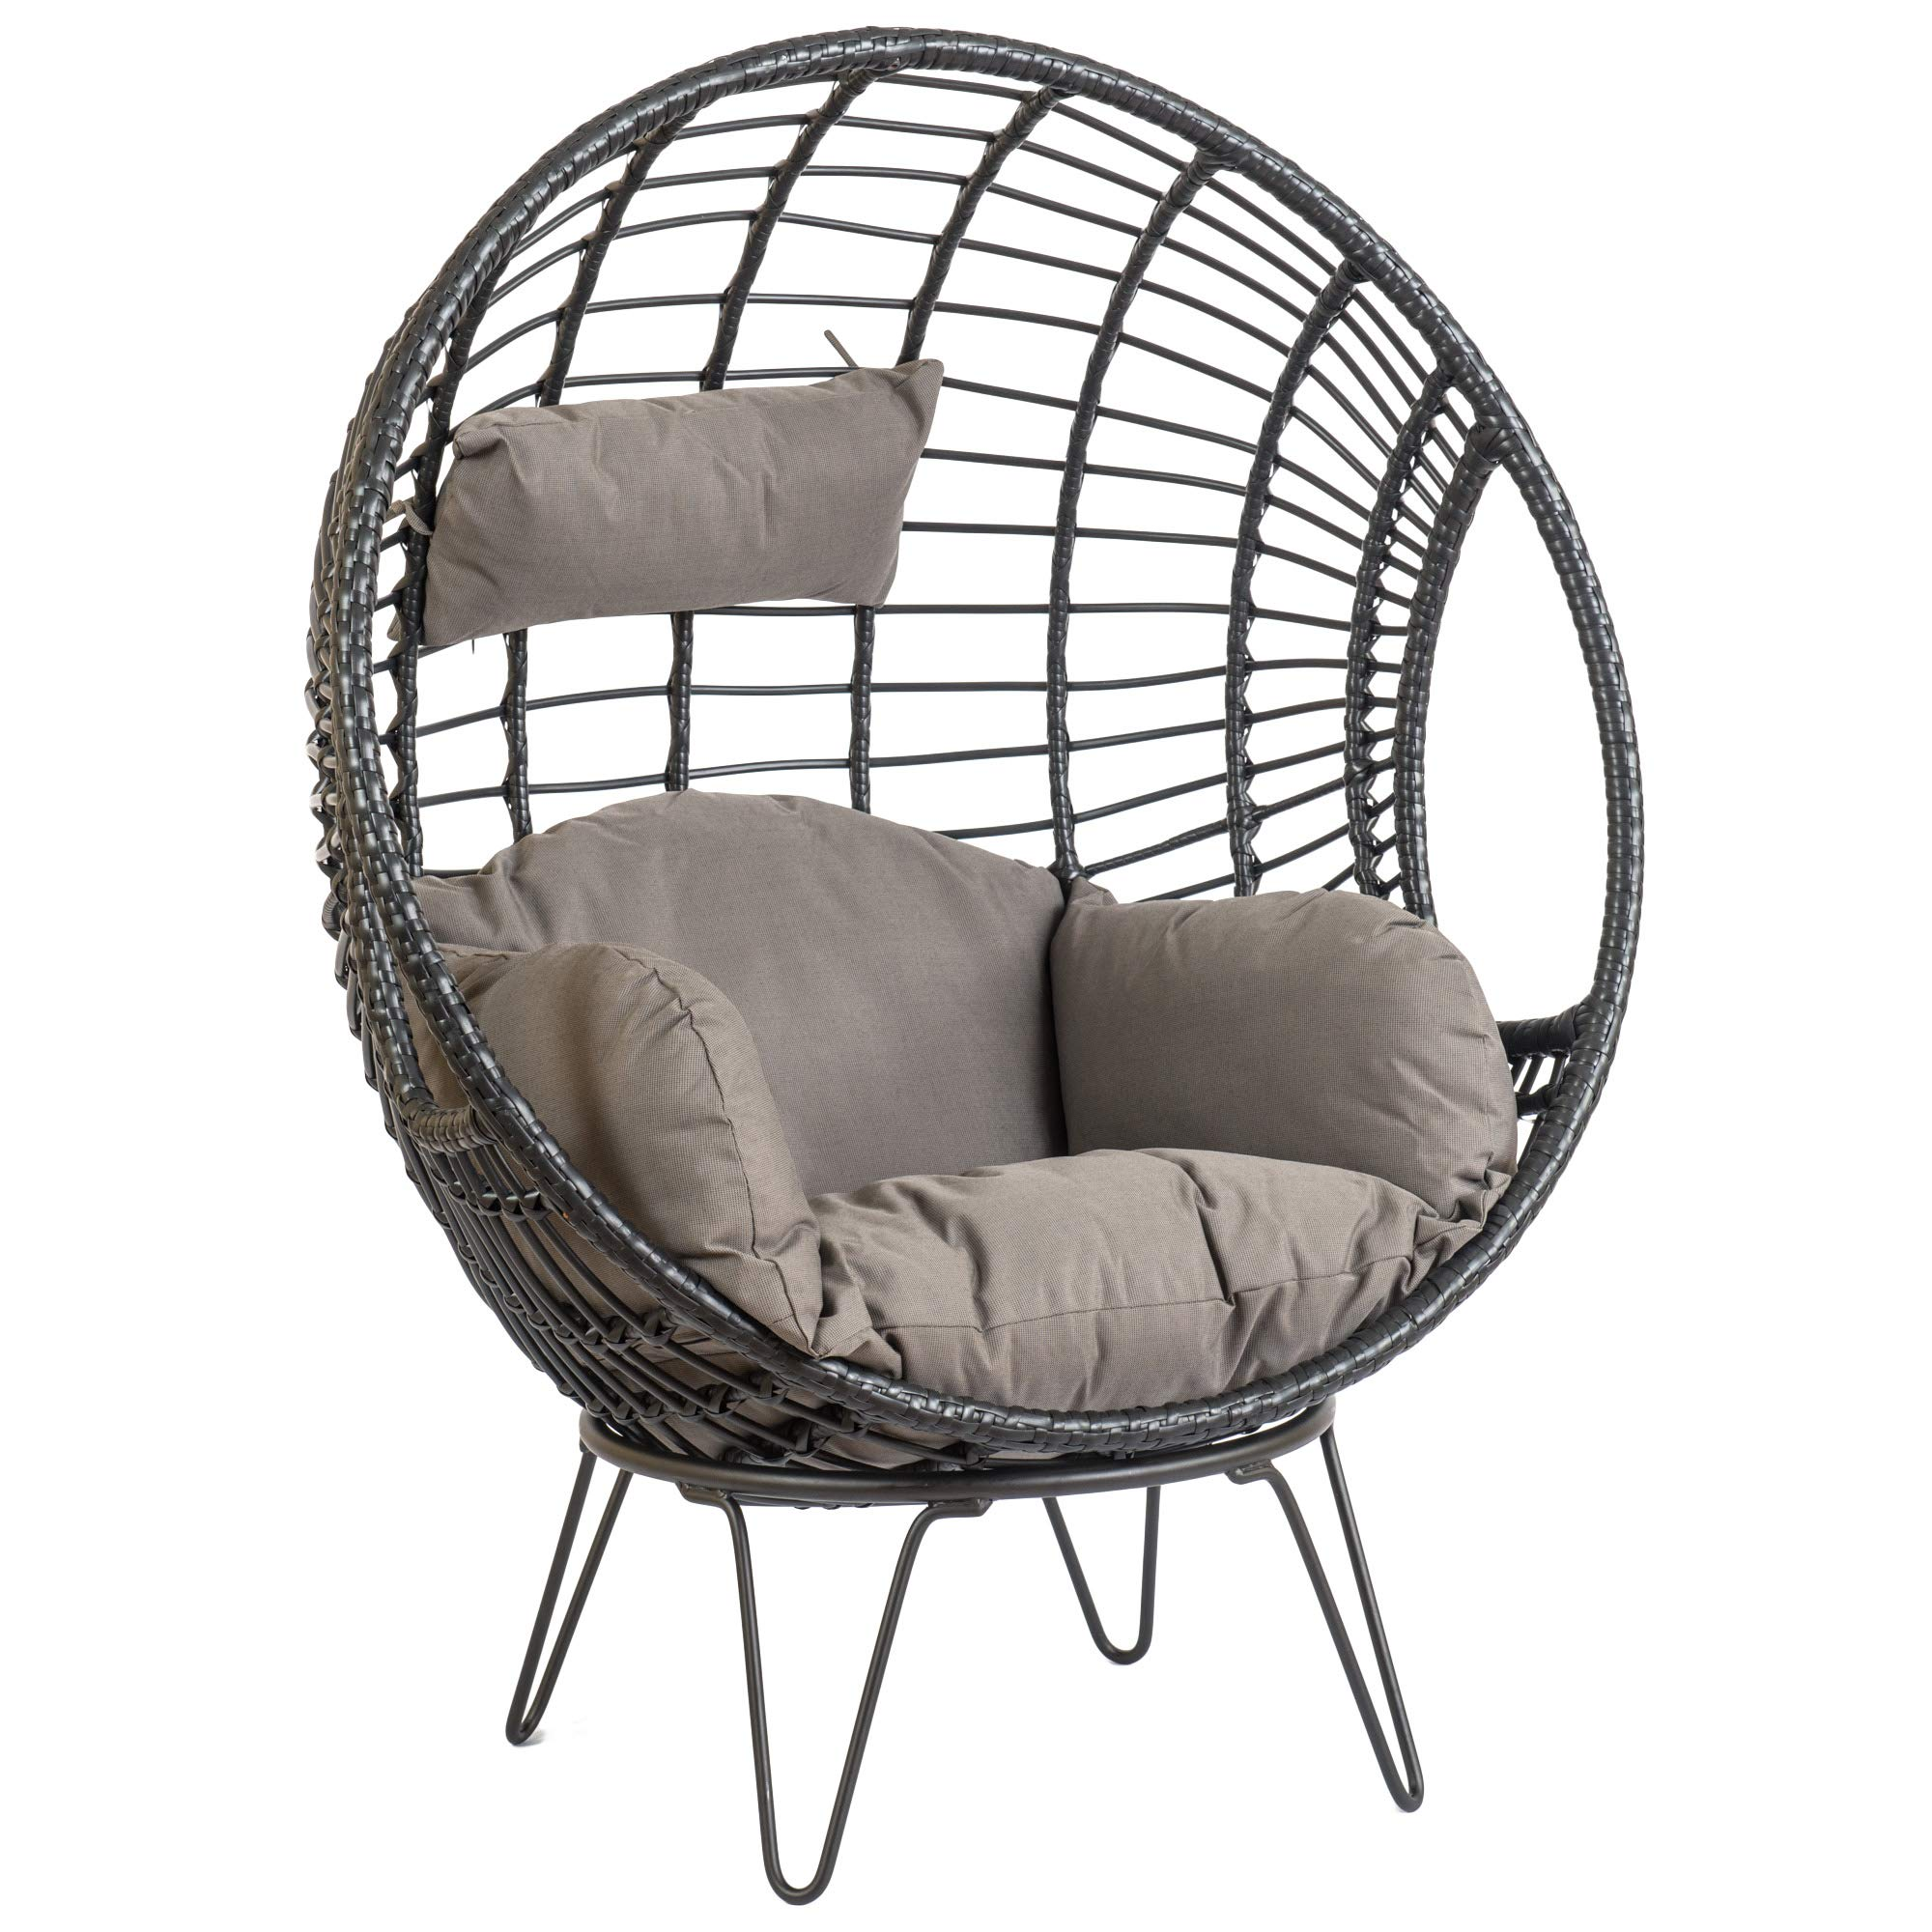 6 Super Outdoor Hanging Egg Chair - ASTONSHEDSUK